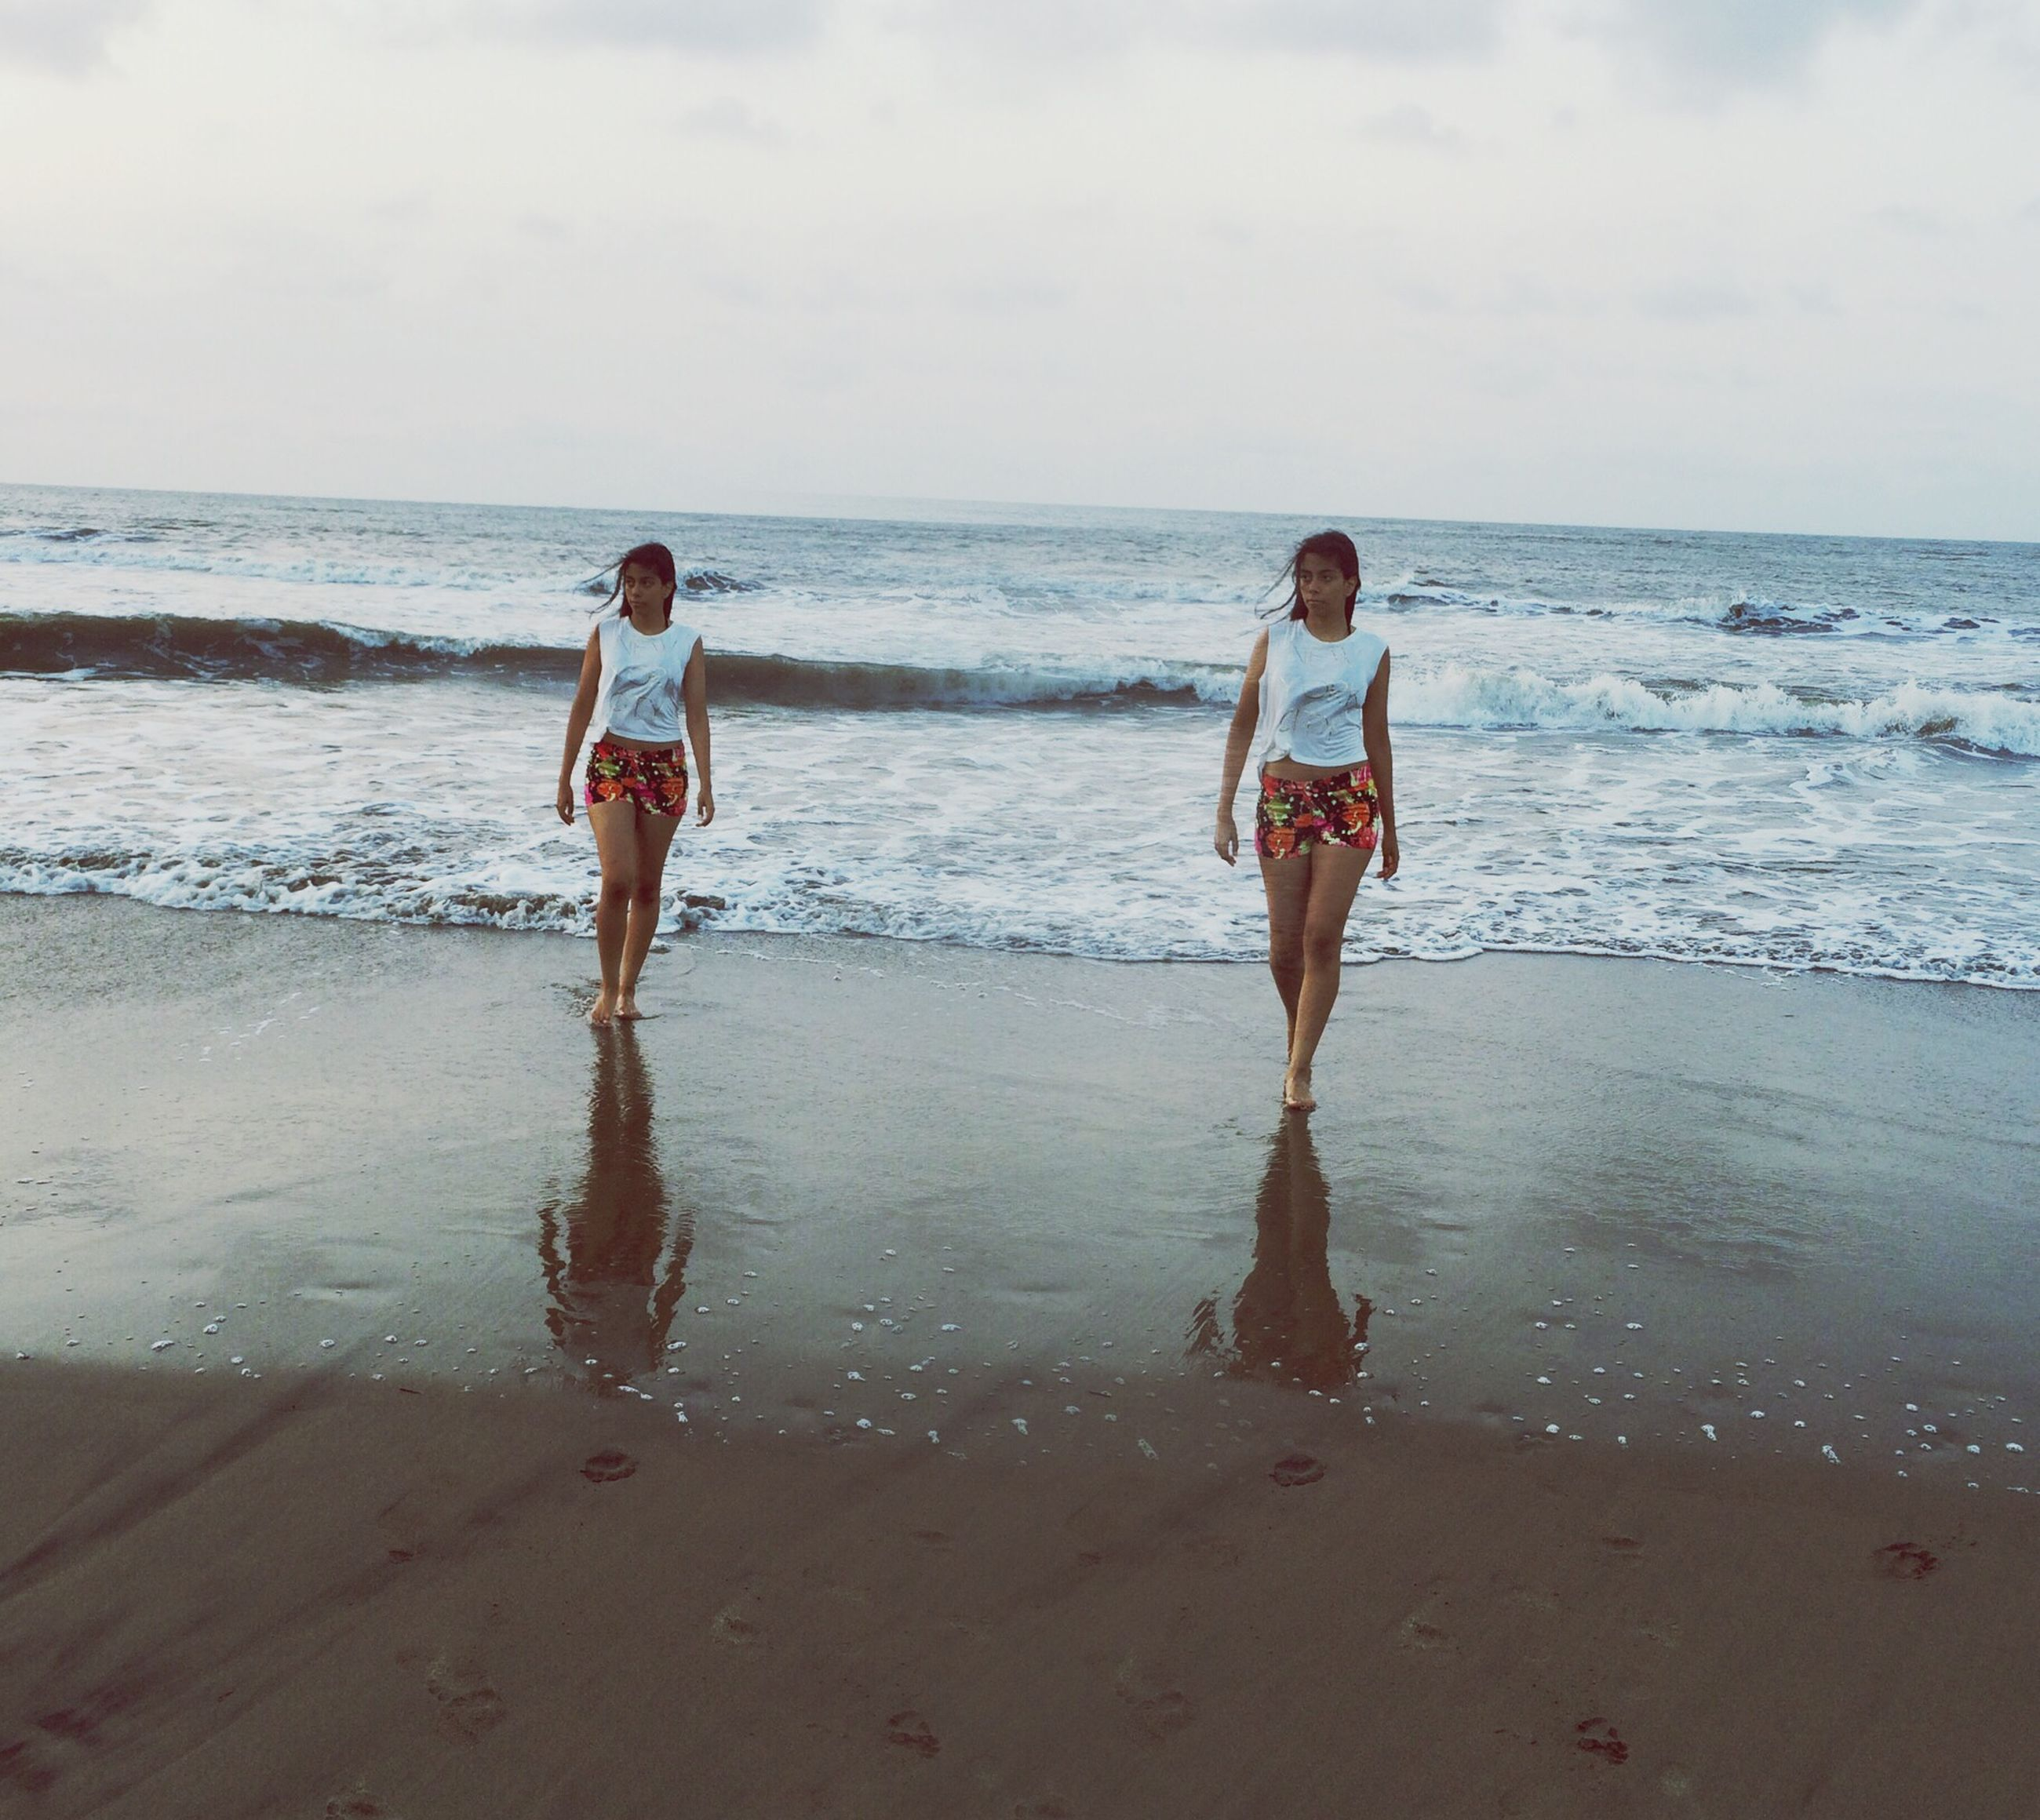 sea, beach, horizon over water, water, shore, sky, sand, full length, wave, leisure activity, lifestyles, vacations, childhood, standing, rear view, scenics, beauty in nature, nature